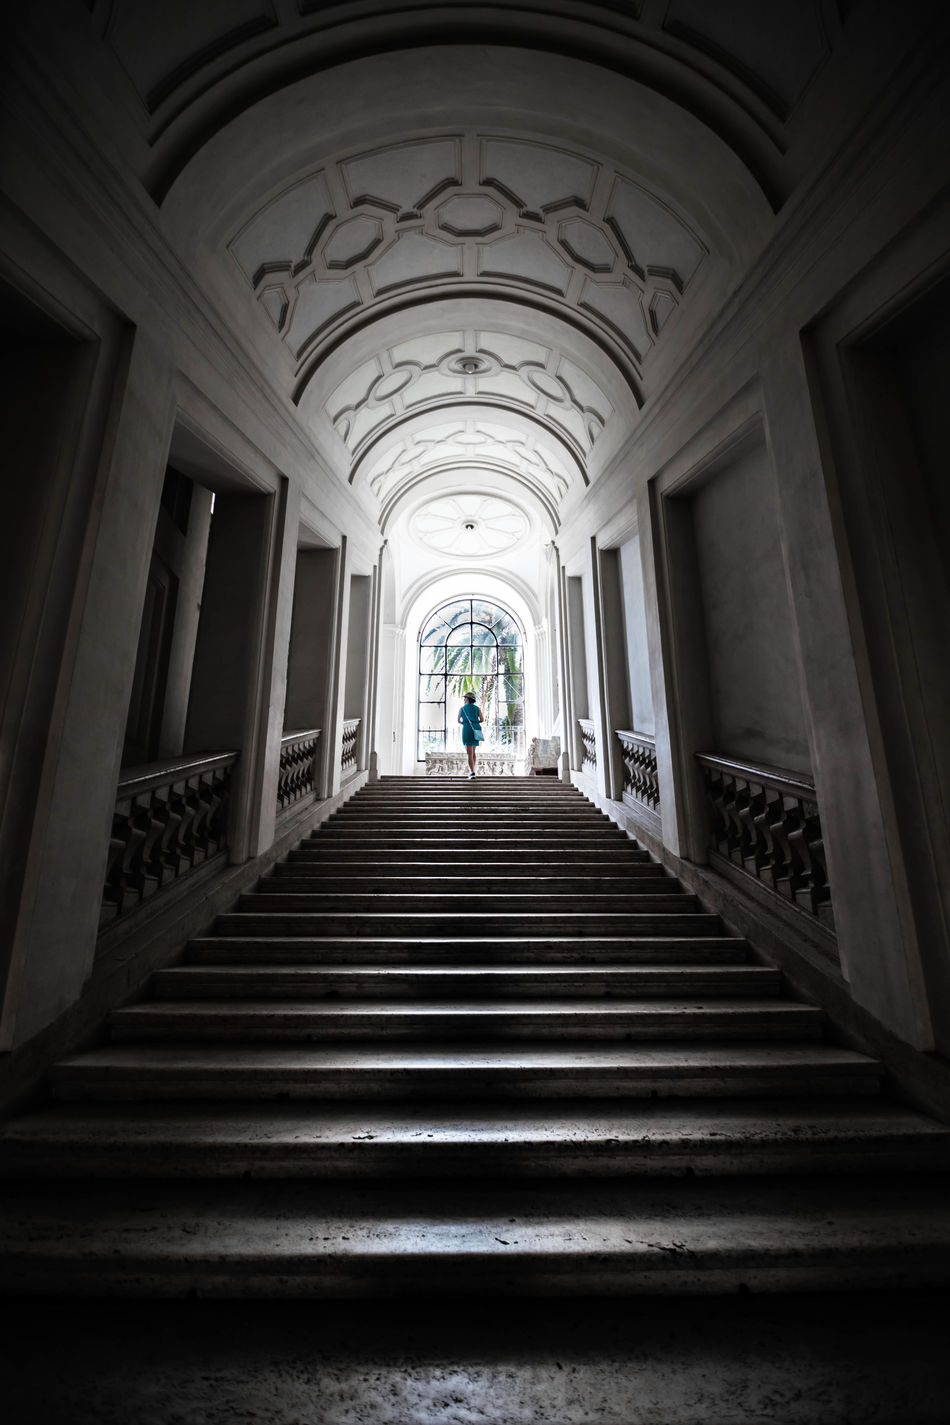 Arch Arched Architectural Column Architecture Archway Day Diminishing Perspective Entrance Full Length Indoors  Leading Lines Low Angle View Marble Stairs Moving Up One Person Roma Staircase Steps Steps And Staircases Symmetry The Way Forward Tourism Tourist Travel Destinations Vacations